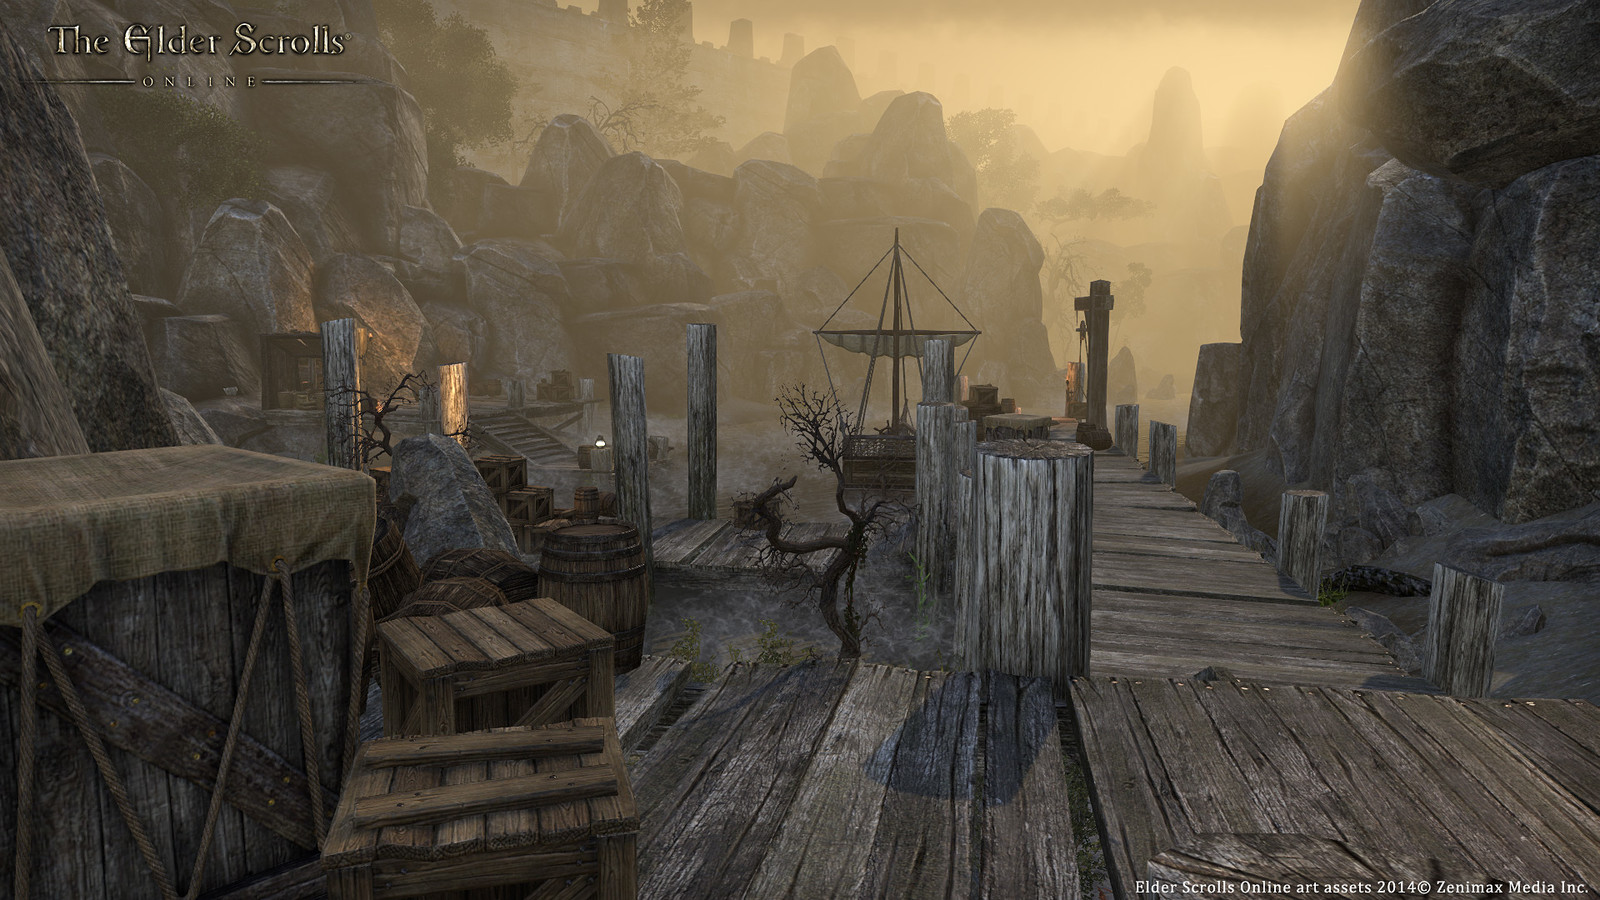 World building alpha pocket created for Elder Scrolls Online. All scene building and lighting done by myself. Asset creation included myself and multiple team members.